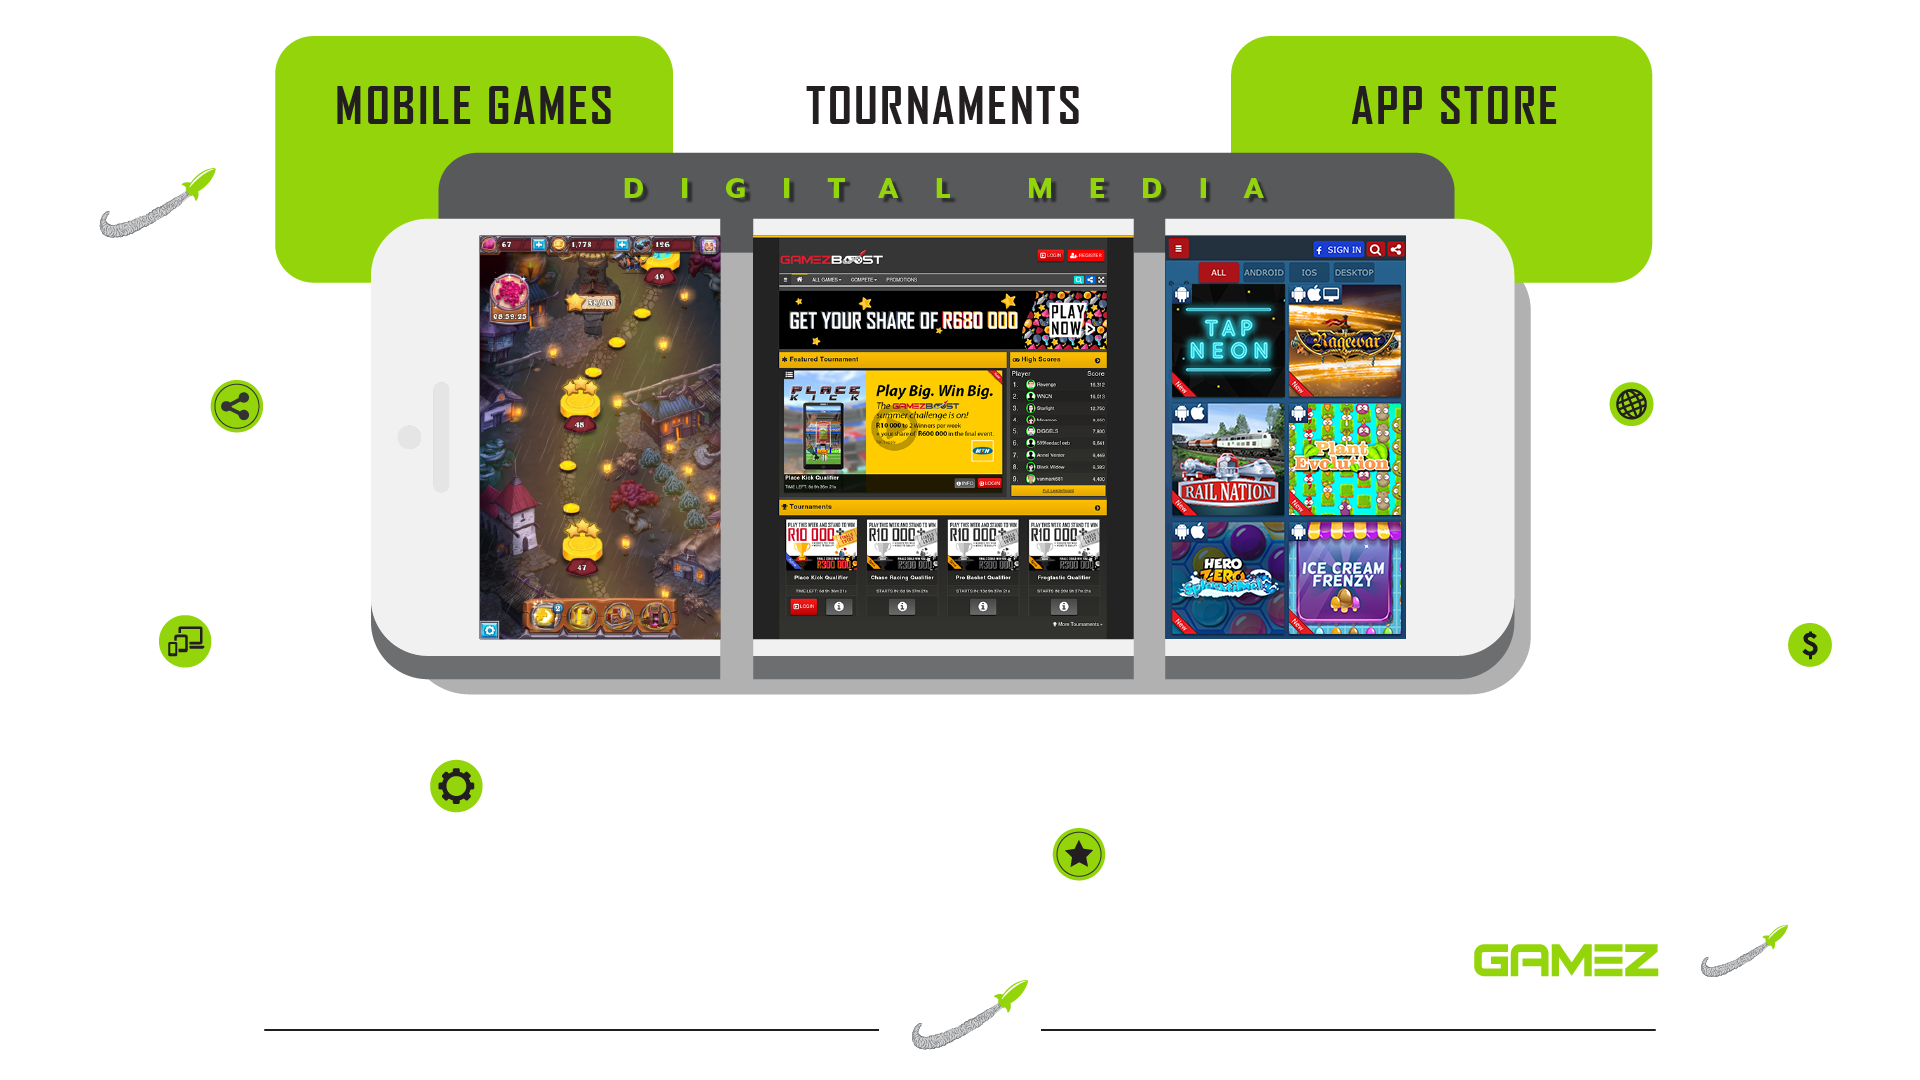 Overview of the core GameZBoost games platform features